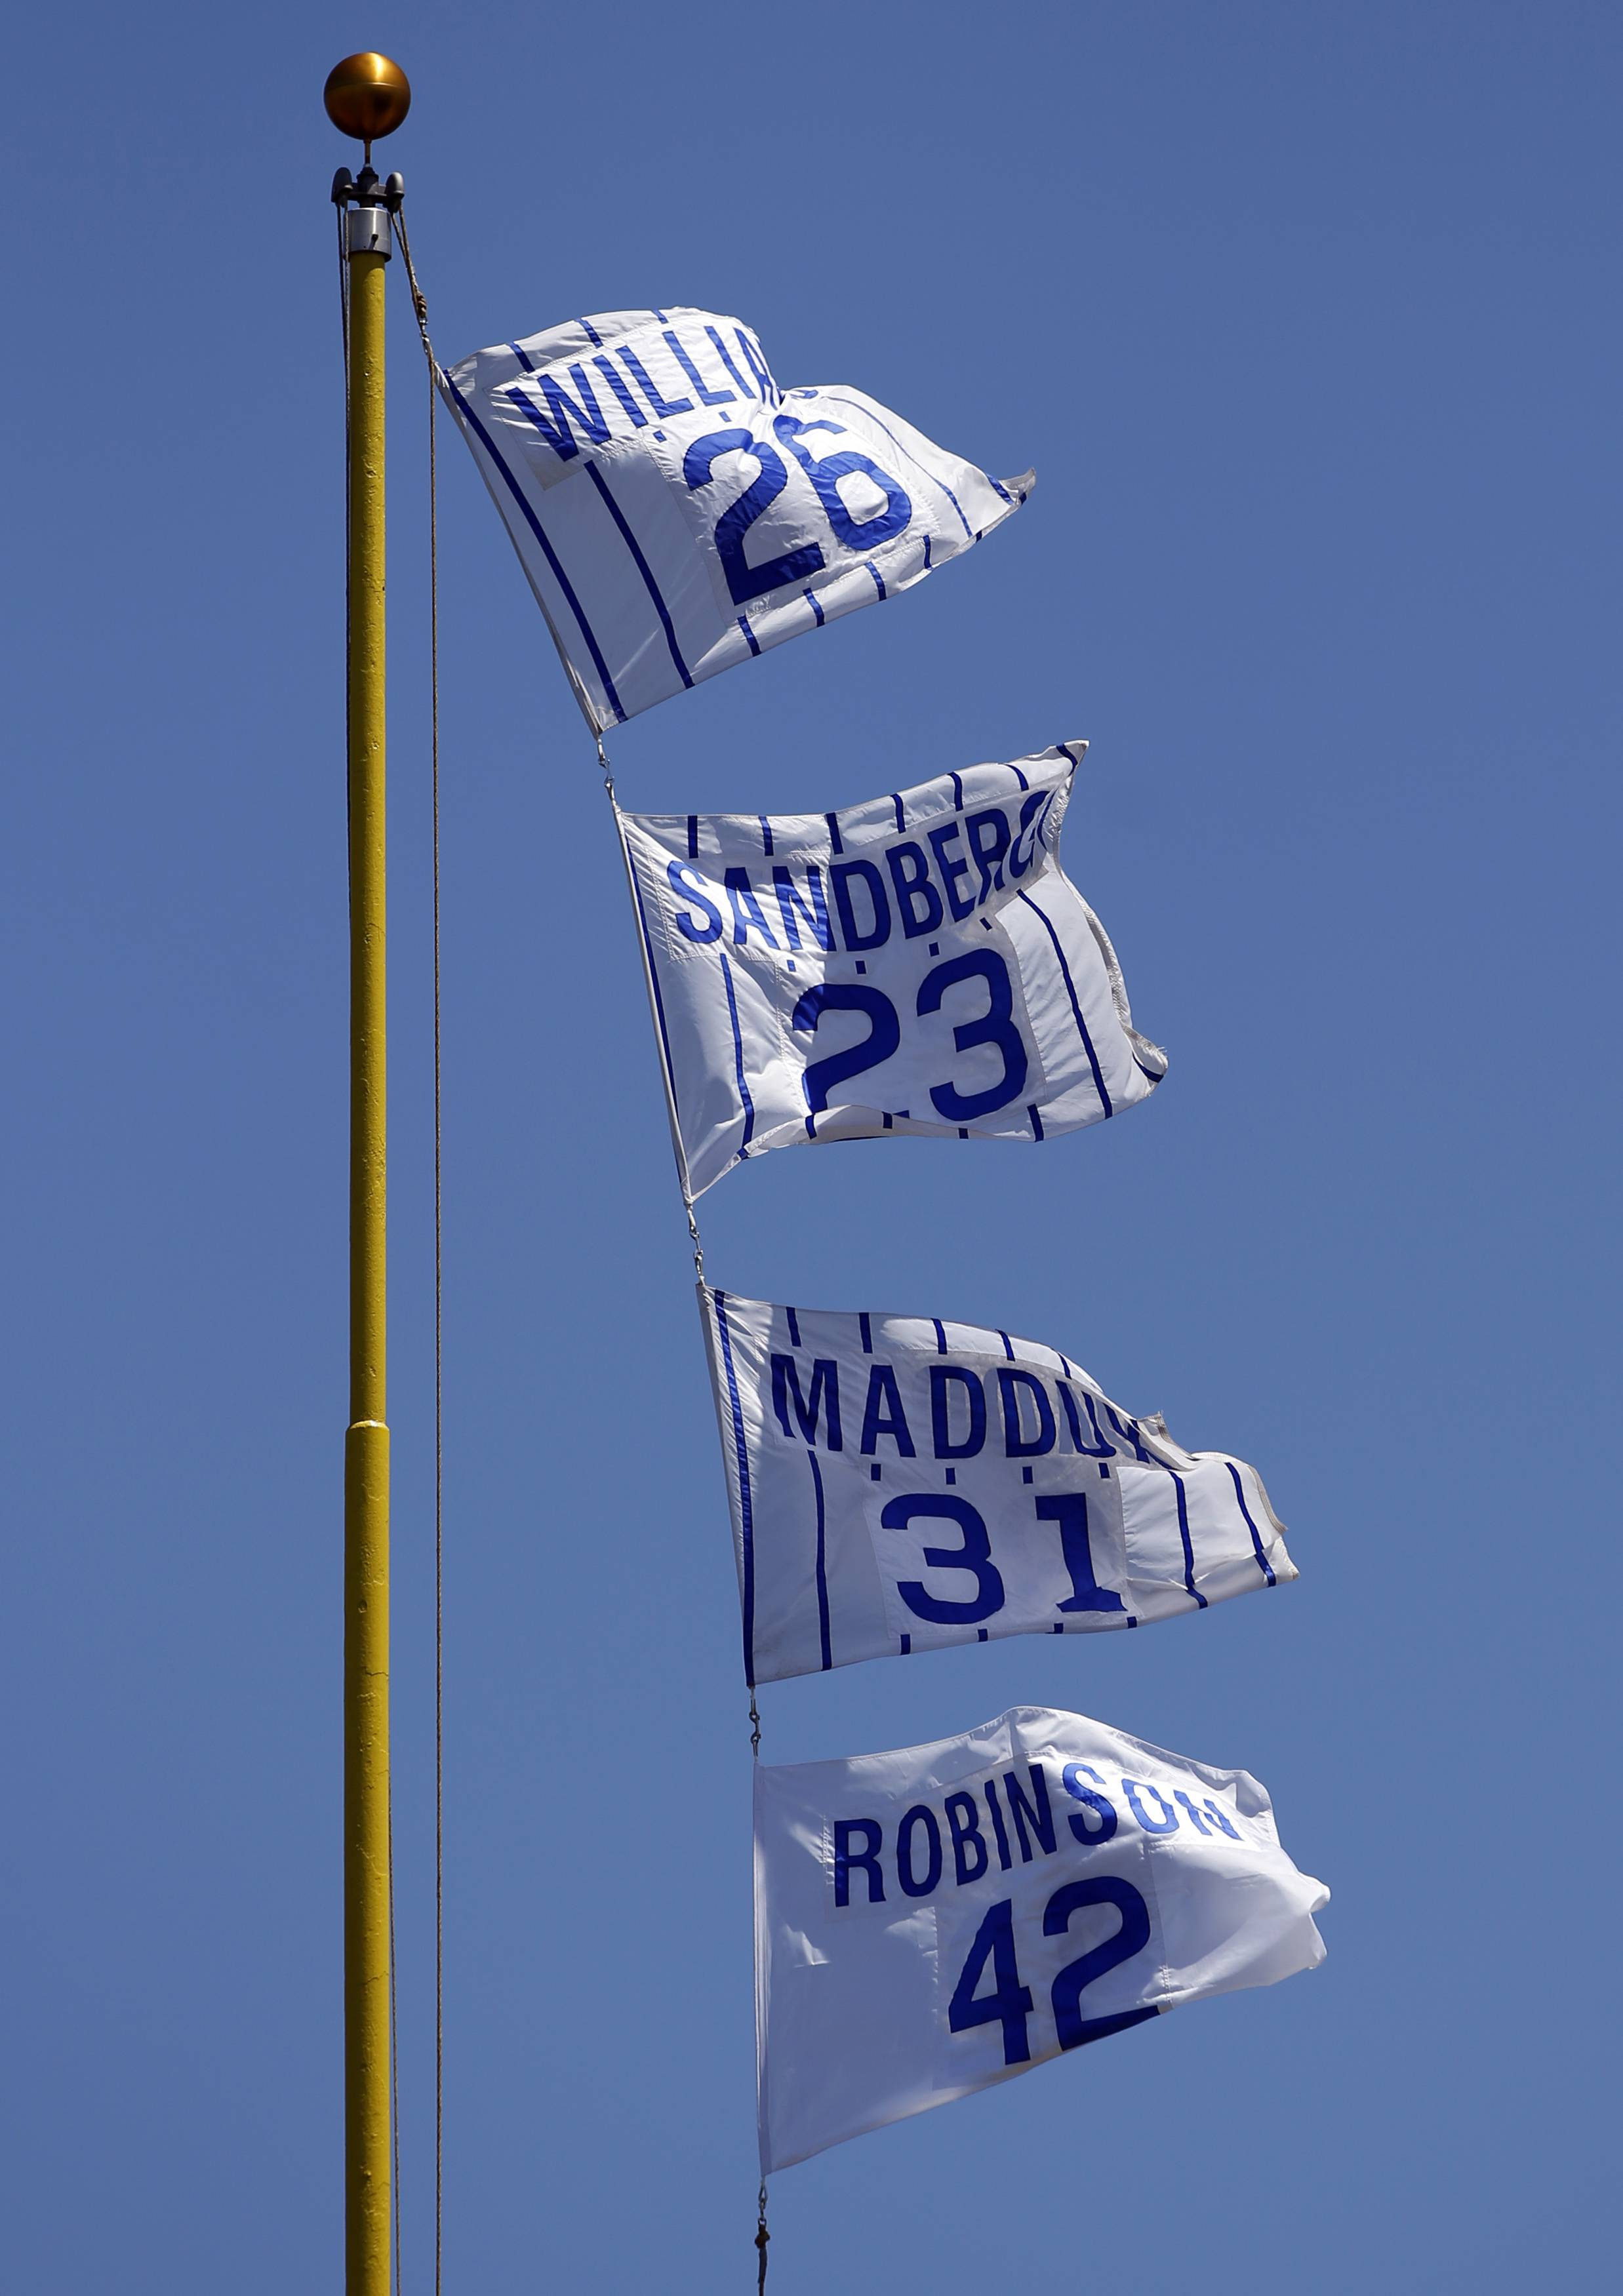 The Chicago Cubs raise a flag in honor of Jackie Robinson's (42) 70th anniversary of playing his first game at Wrigley Field, before a baseball game between the Cincinnati Reds and the Chicago Cubs in Chicago, Thursday, May 18, 2017.